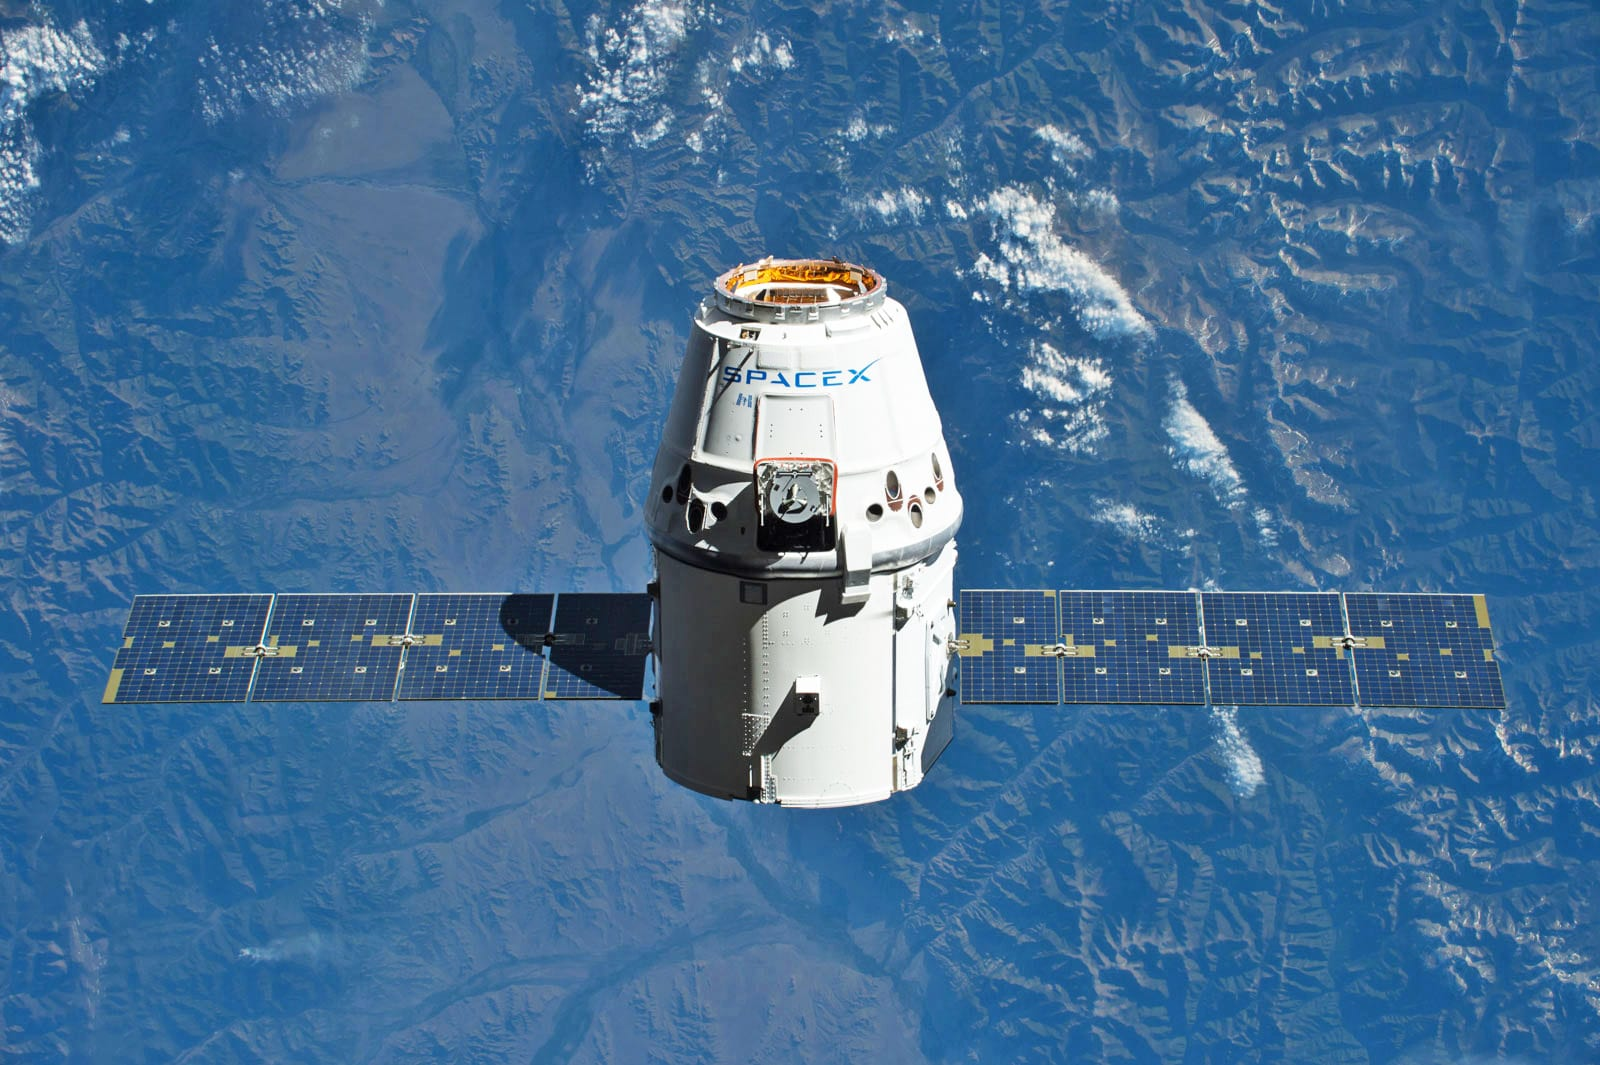 SpaceX's capsule 're-flight' is a space travel milestone